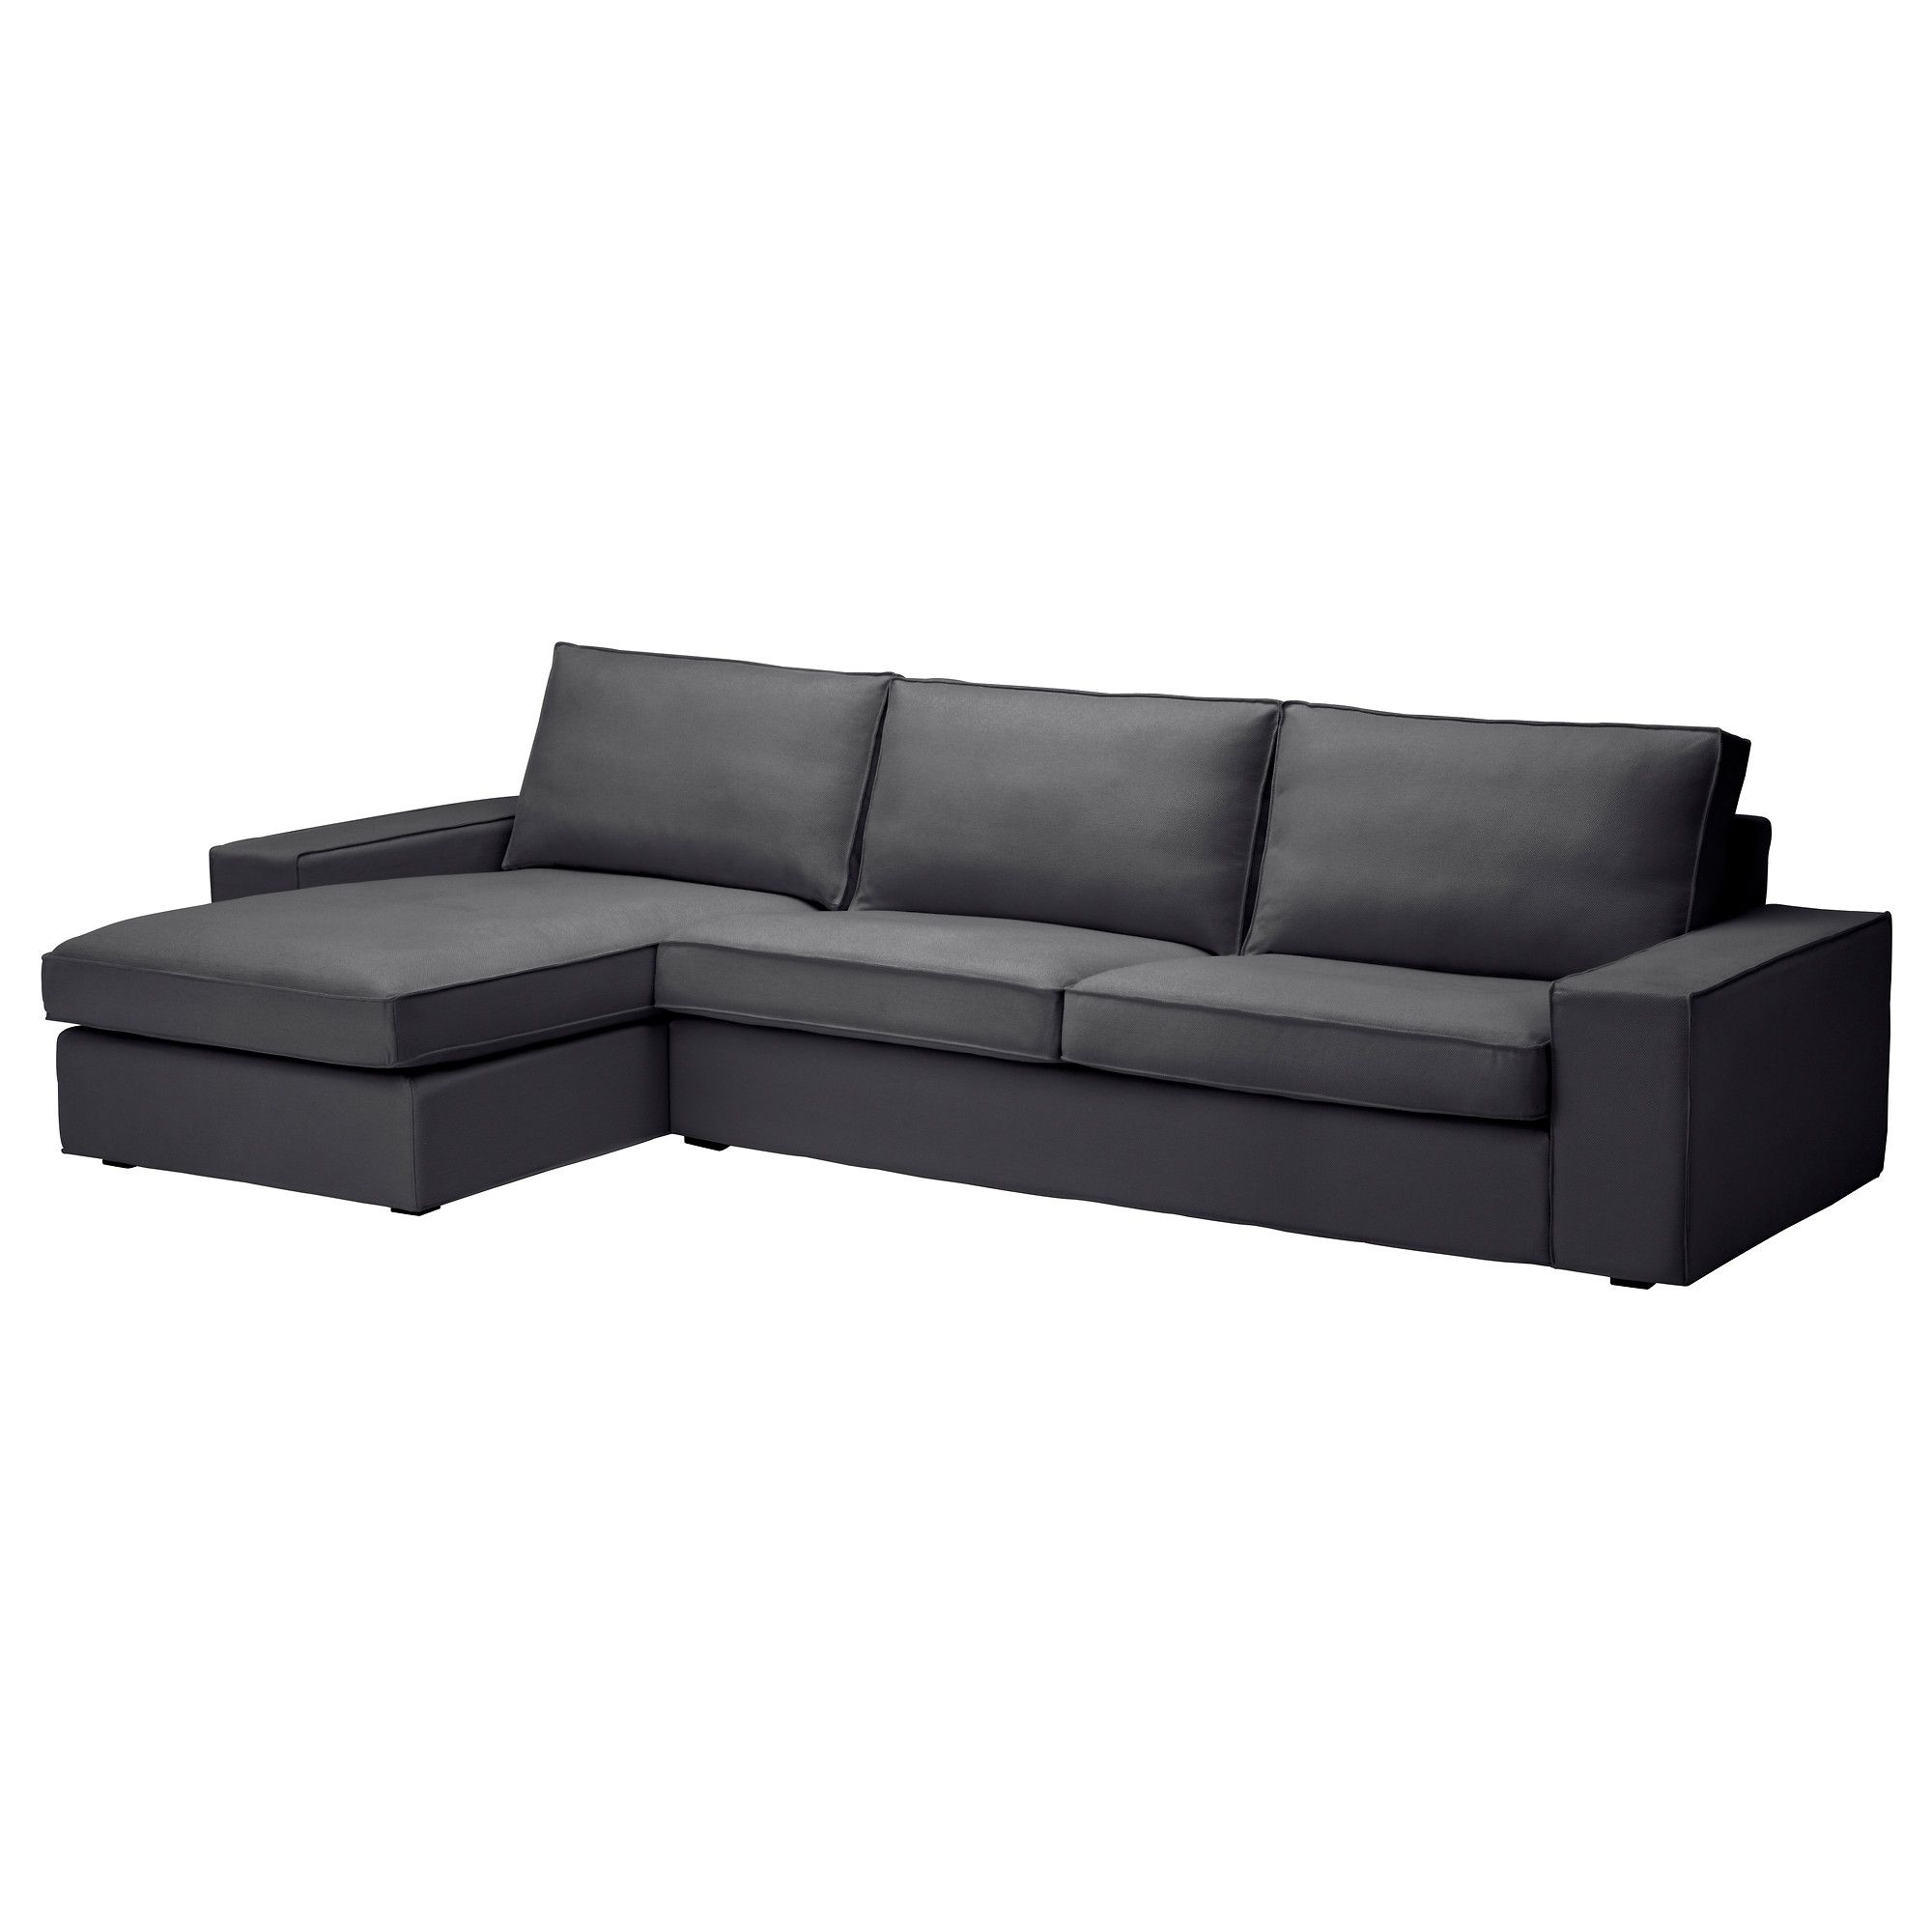 Kivik sofa and chaise lounge dansbo dark gray sofa for Ikea gray sofa